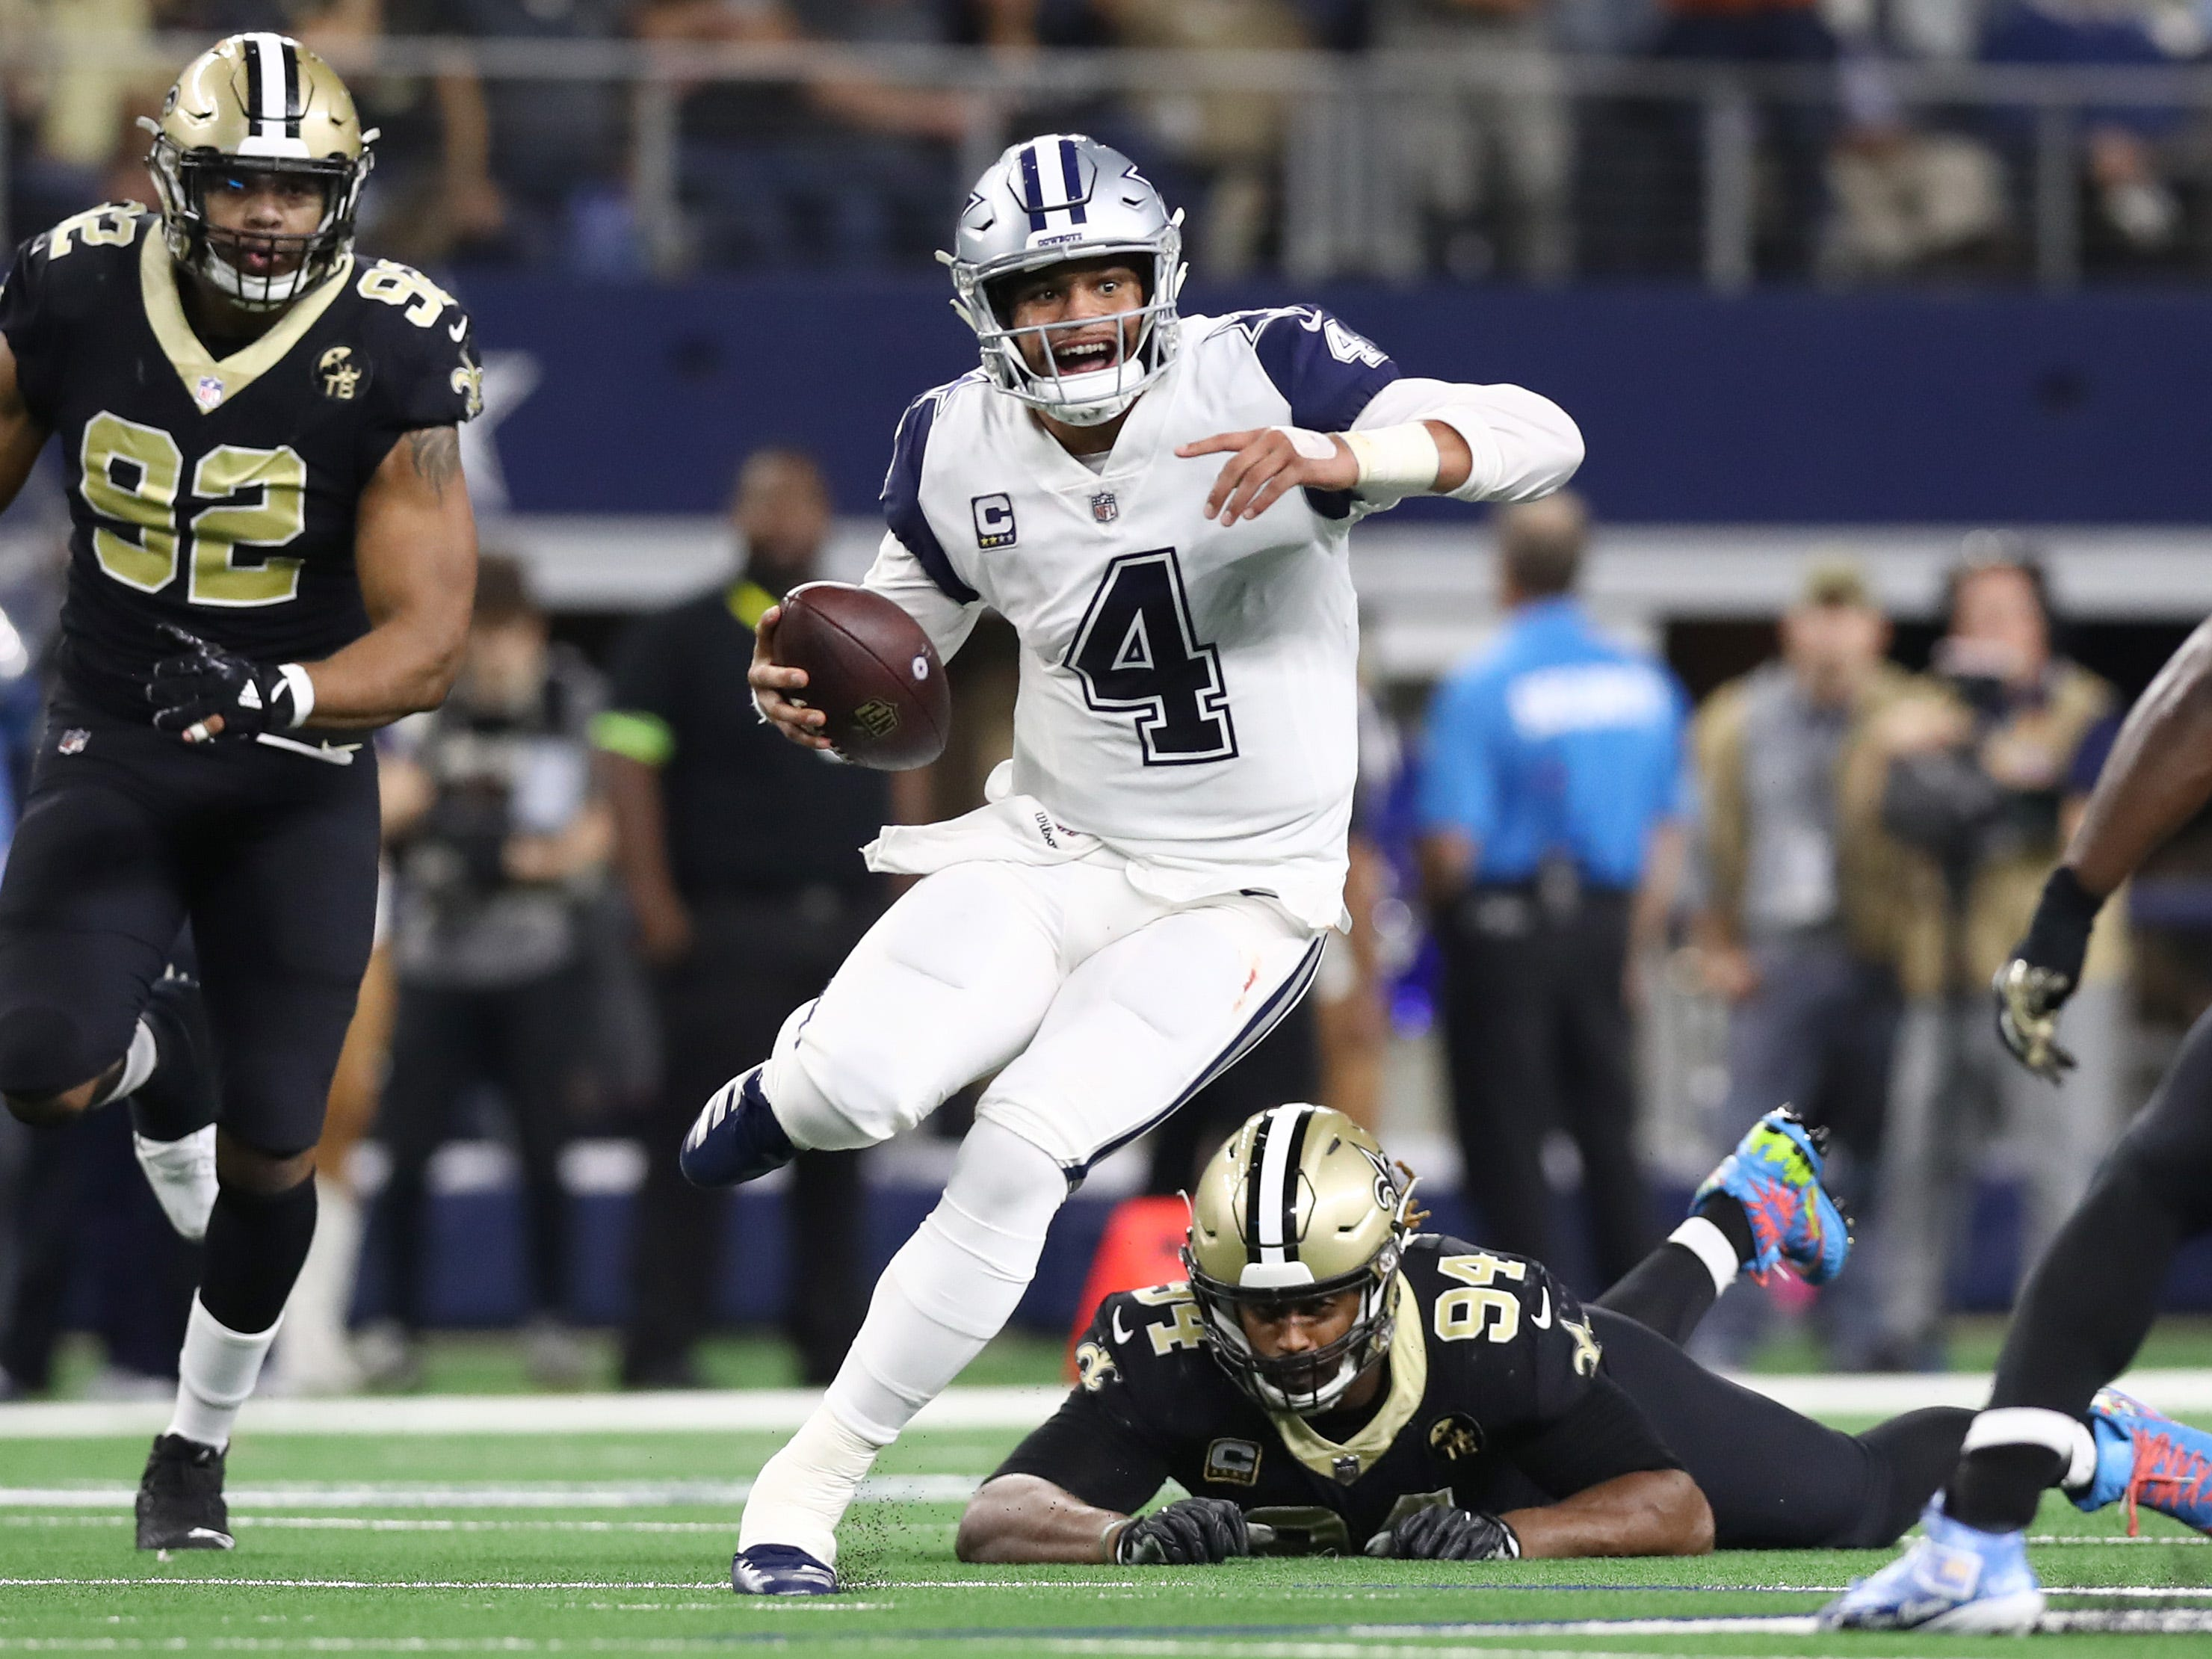 Dallas Cowboys quarterback Dak Prescott runs with the ball in the second quarter against the New Orleans Saints.